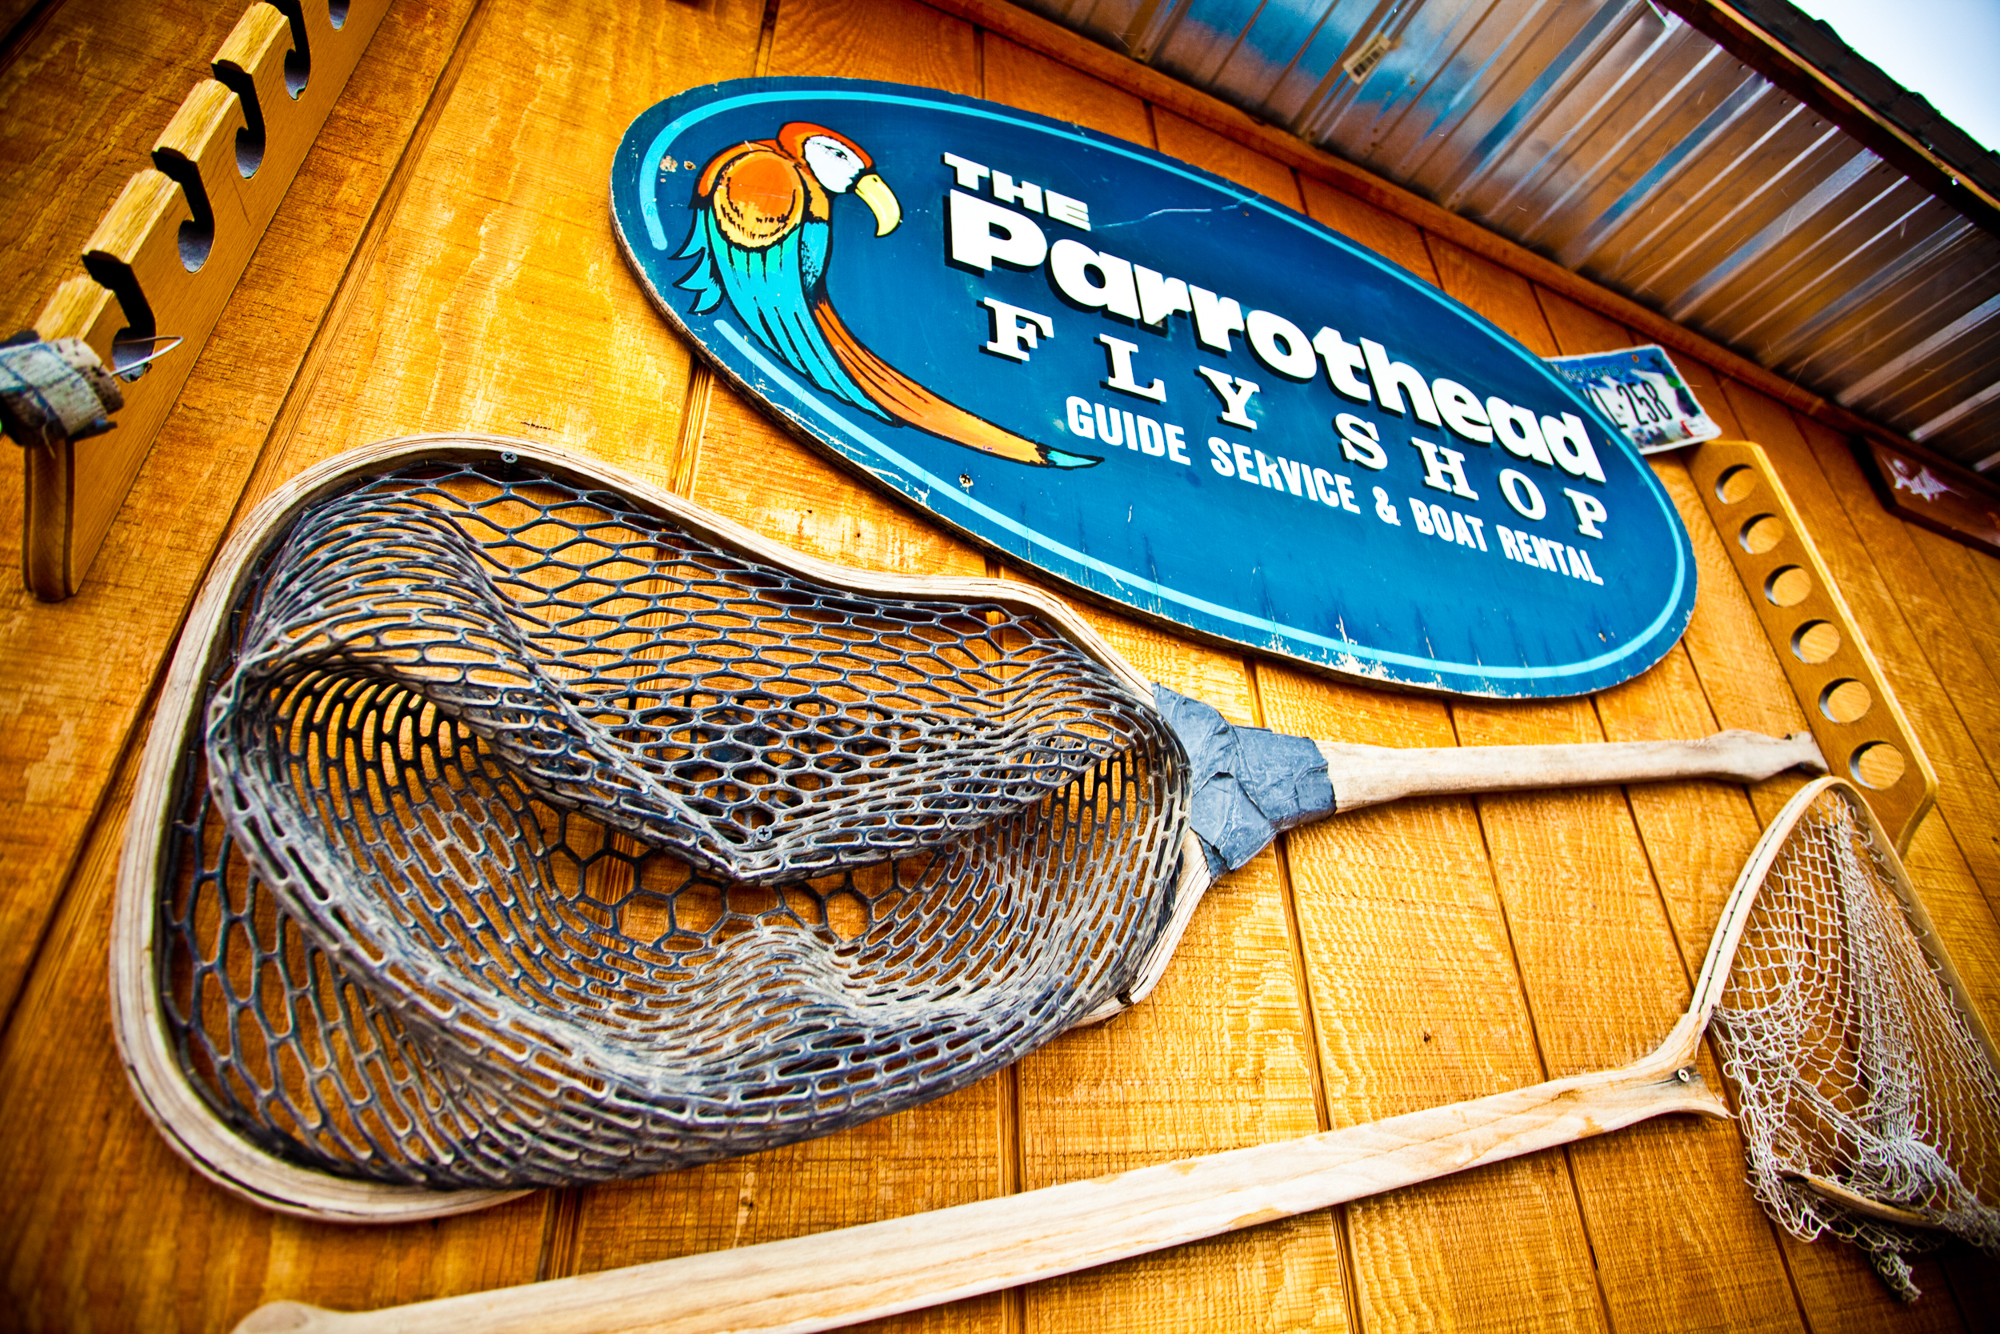 Living on island time. Headhunters Fly Shop's bright turquoise- and orange-painted walls are accented by tropical signs, making it stand out from other Western fly shops.